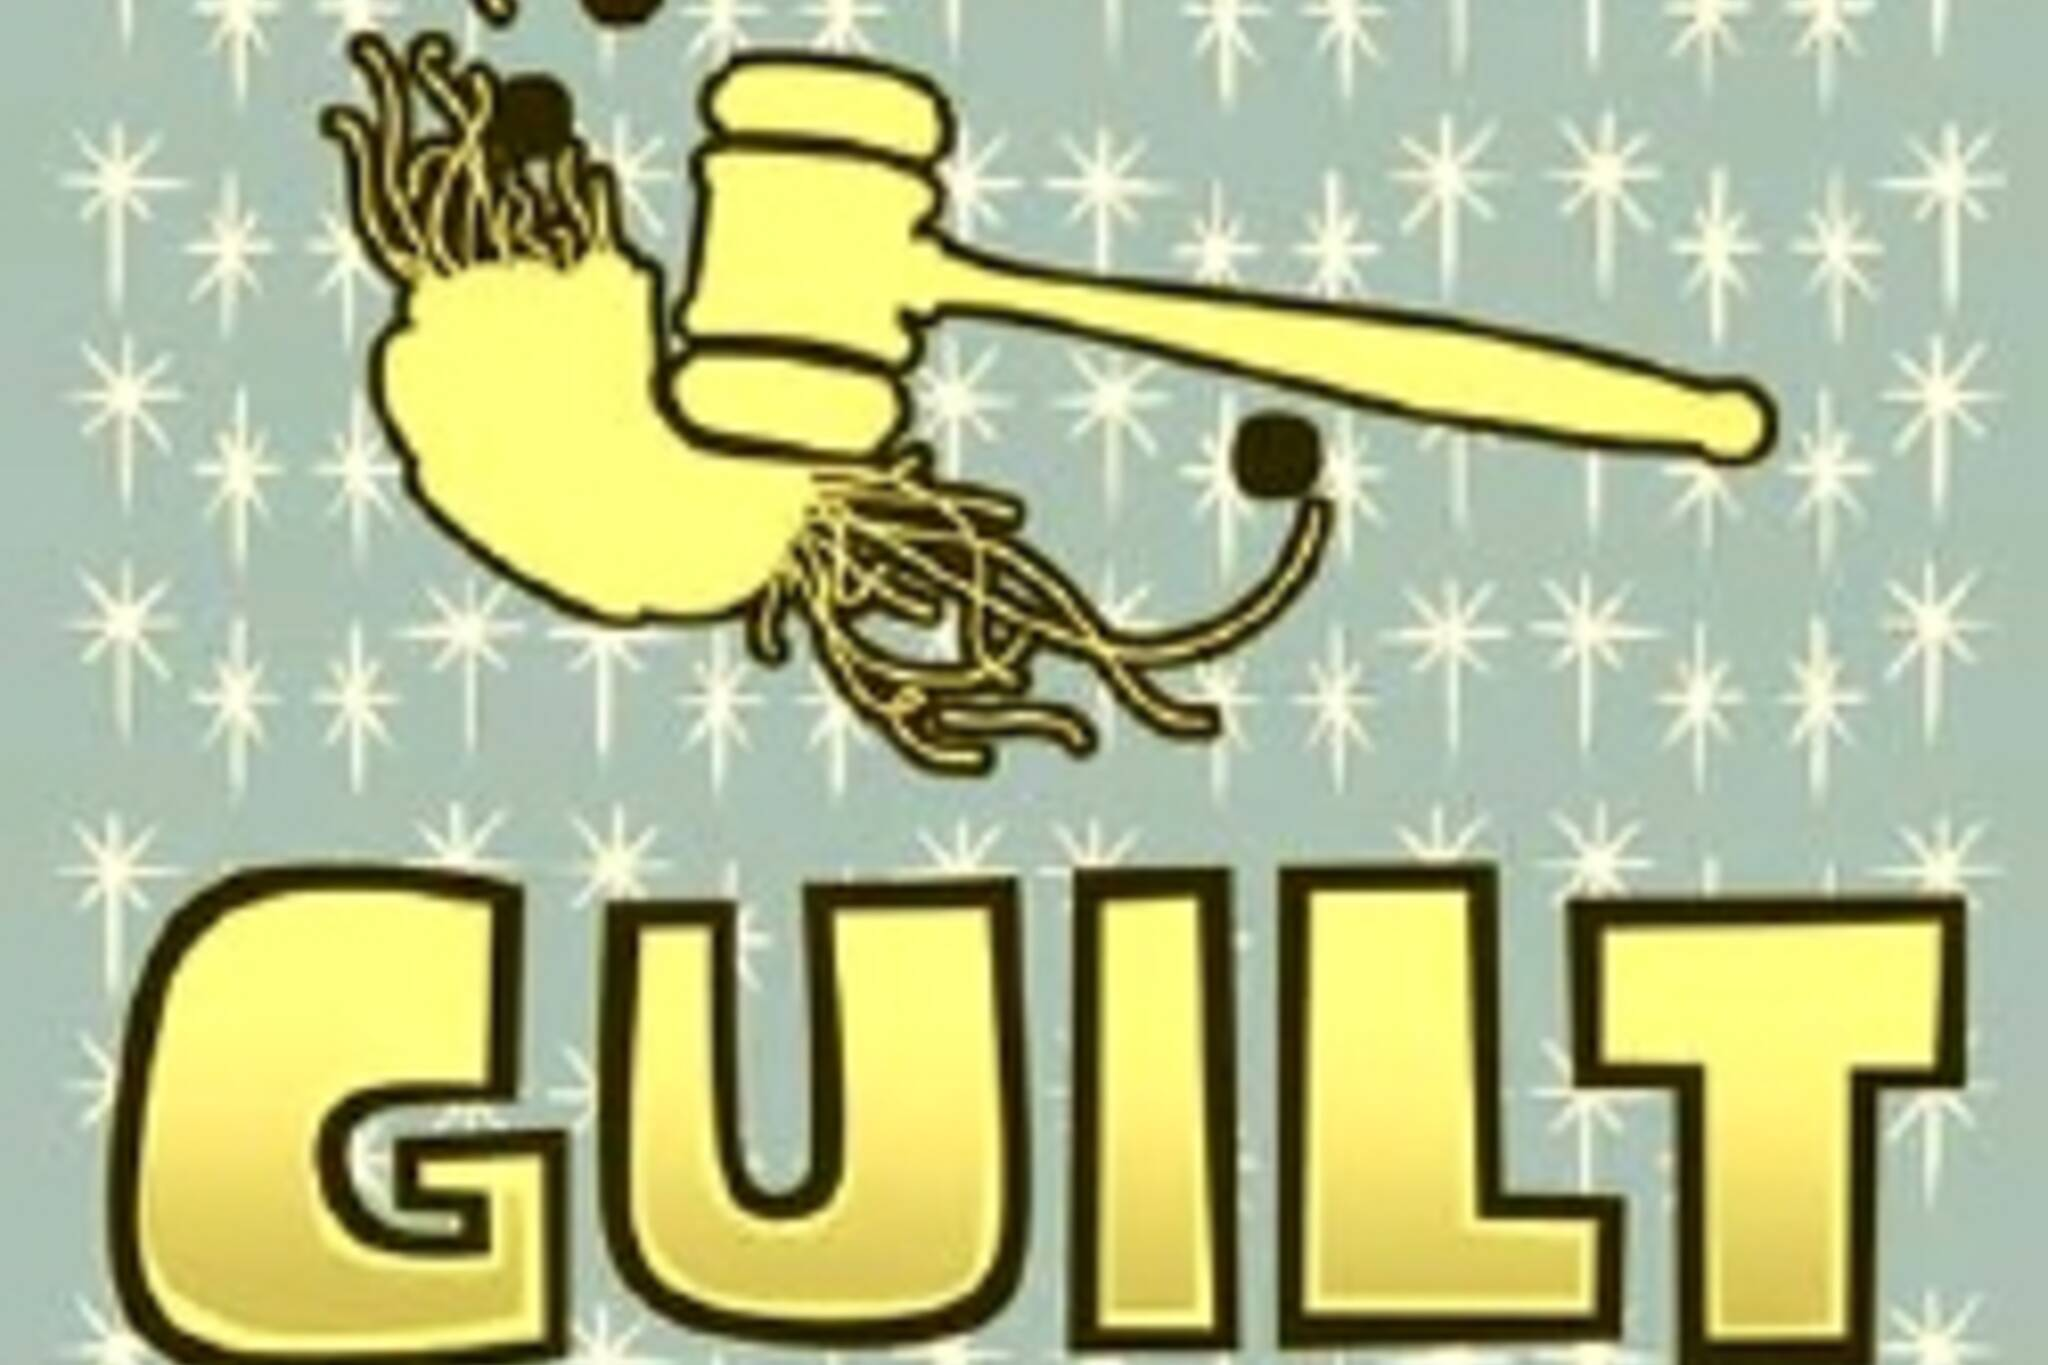 Guilt Pasta by Jeff Cottrill